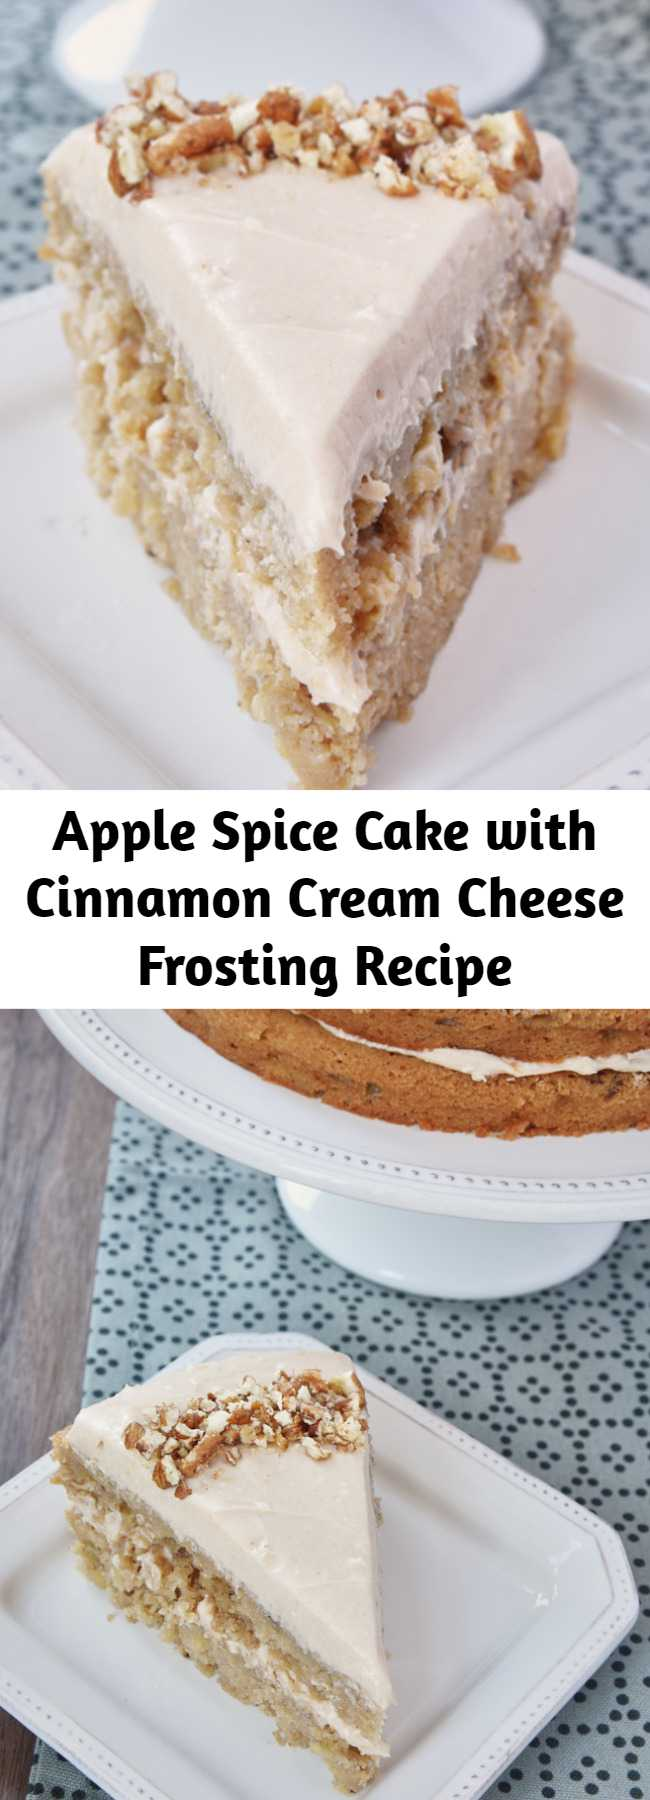 Apple Spice Cake with Cinnamon Cream Cheese Frosting Recipe - Apple Spice Cake with Cinnamon Cream Cheese Frosting is a delicious celebration of all things fall with lots of apples and fall spices.